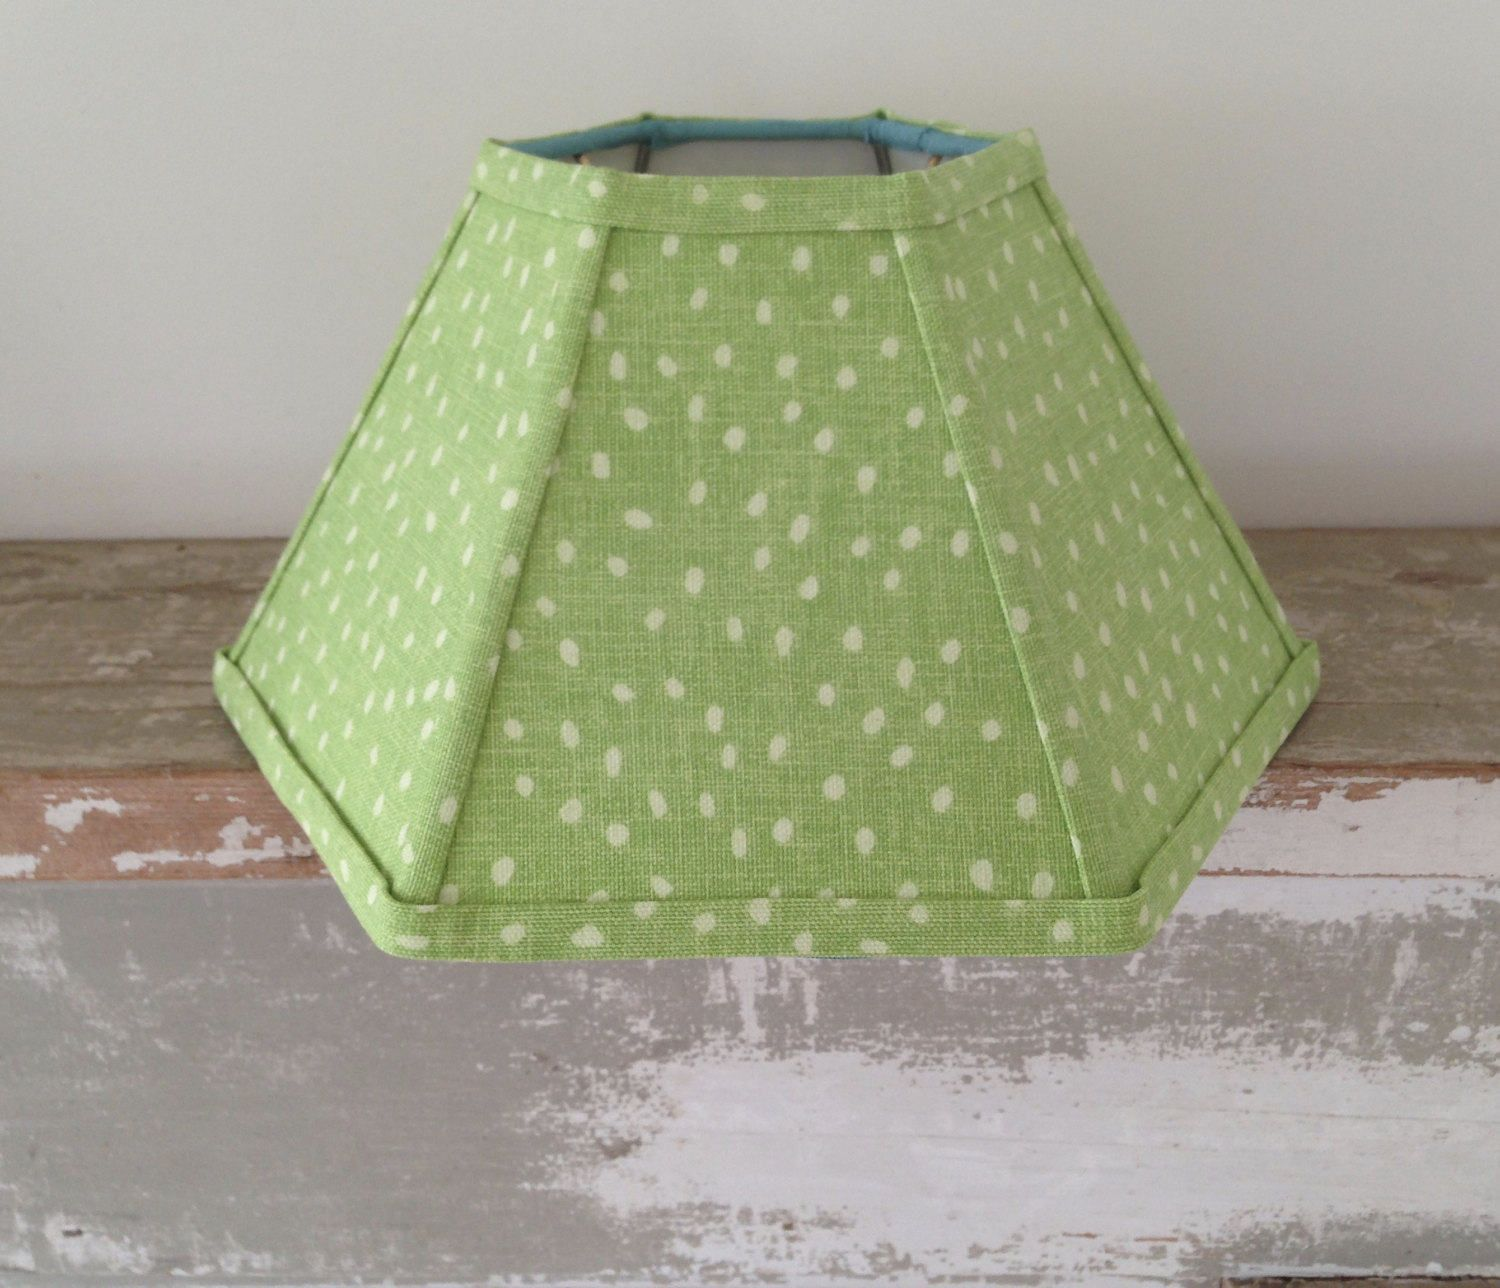 Lime linen hurricane lamp shade funky dot lampshade 5t x 12b x 7 lime linen hurricane lamp shade funky dot lampshade 5t x 12b x 7 high fits over glass chimney hard to find susan sargent fabric aloadofball Images